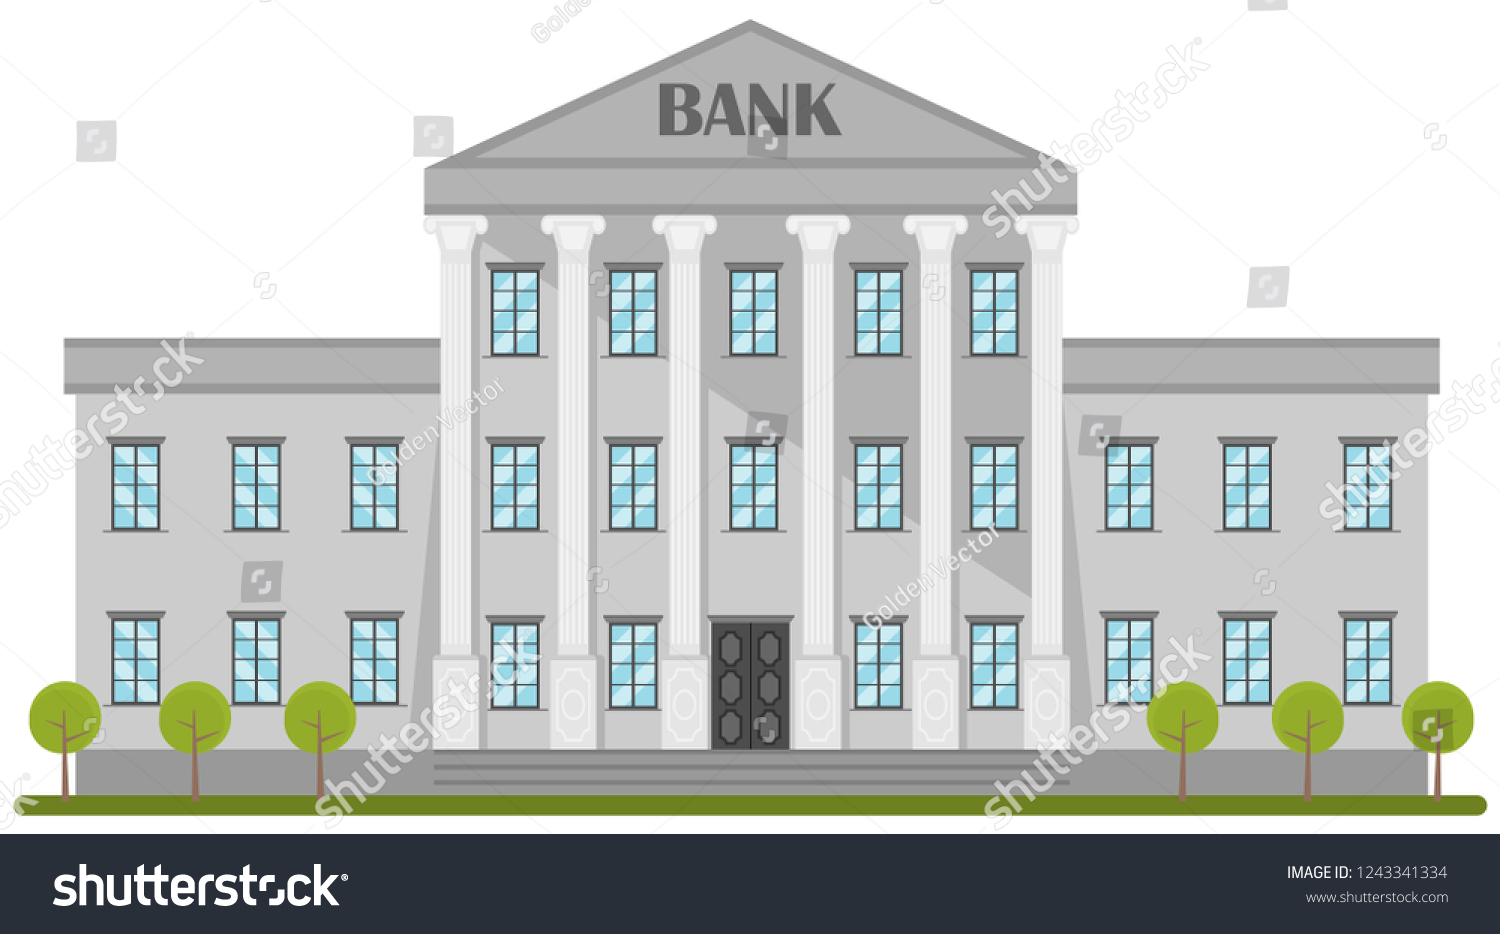 Retro Bank Design.Cartoon Retro Bank Building Courthouse Columns Stock Vector